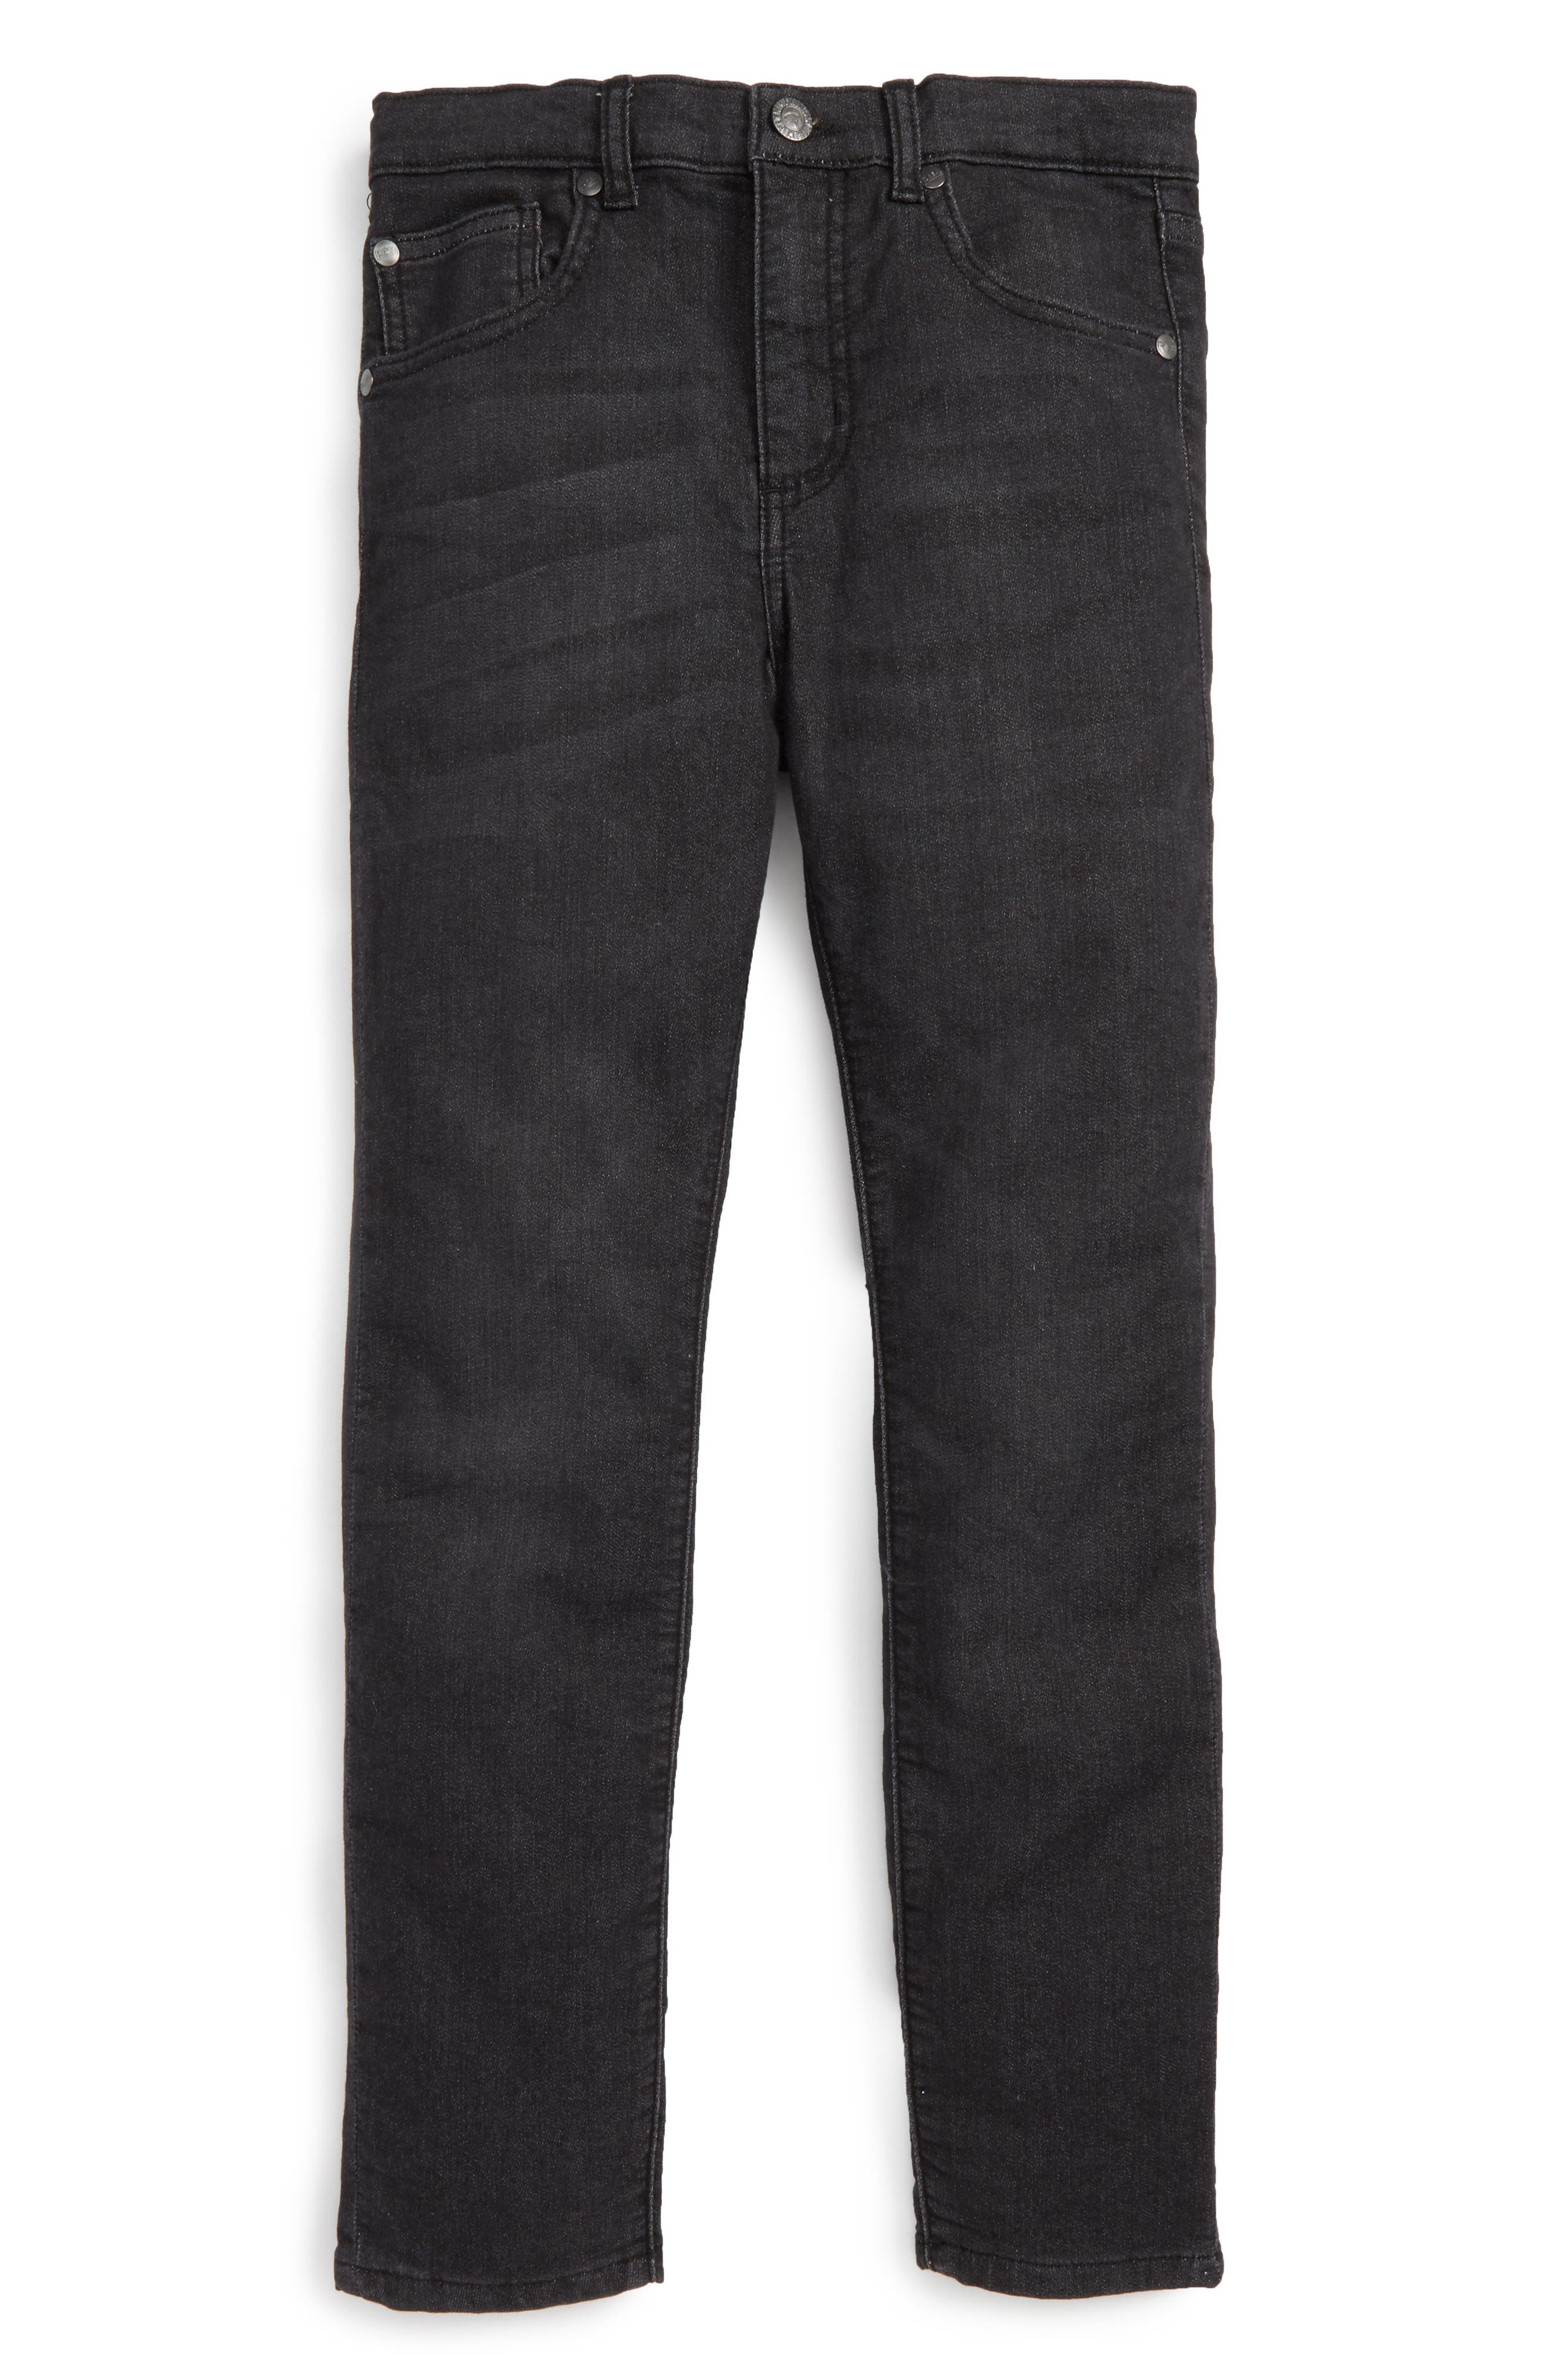 Peek Stretch Cotton Skinny Jeans (Toddler Boys, Little Boys & Big Boys)